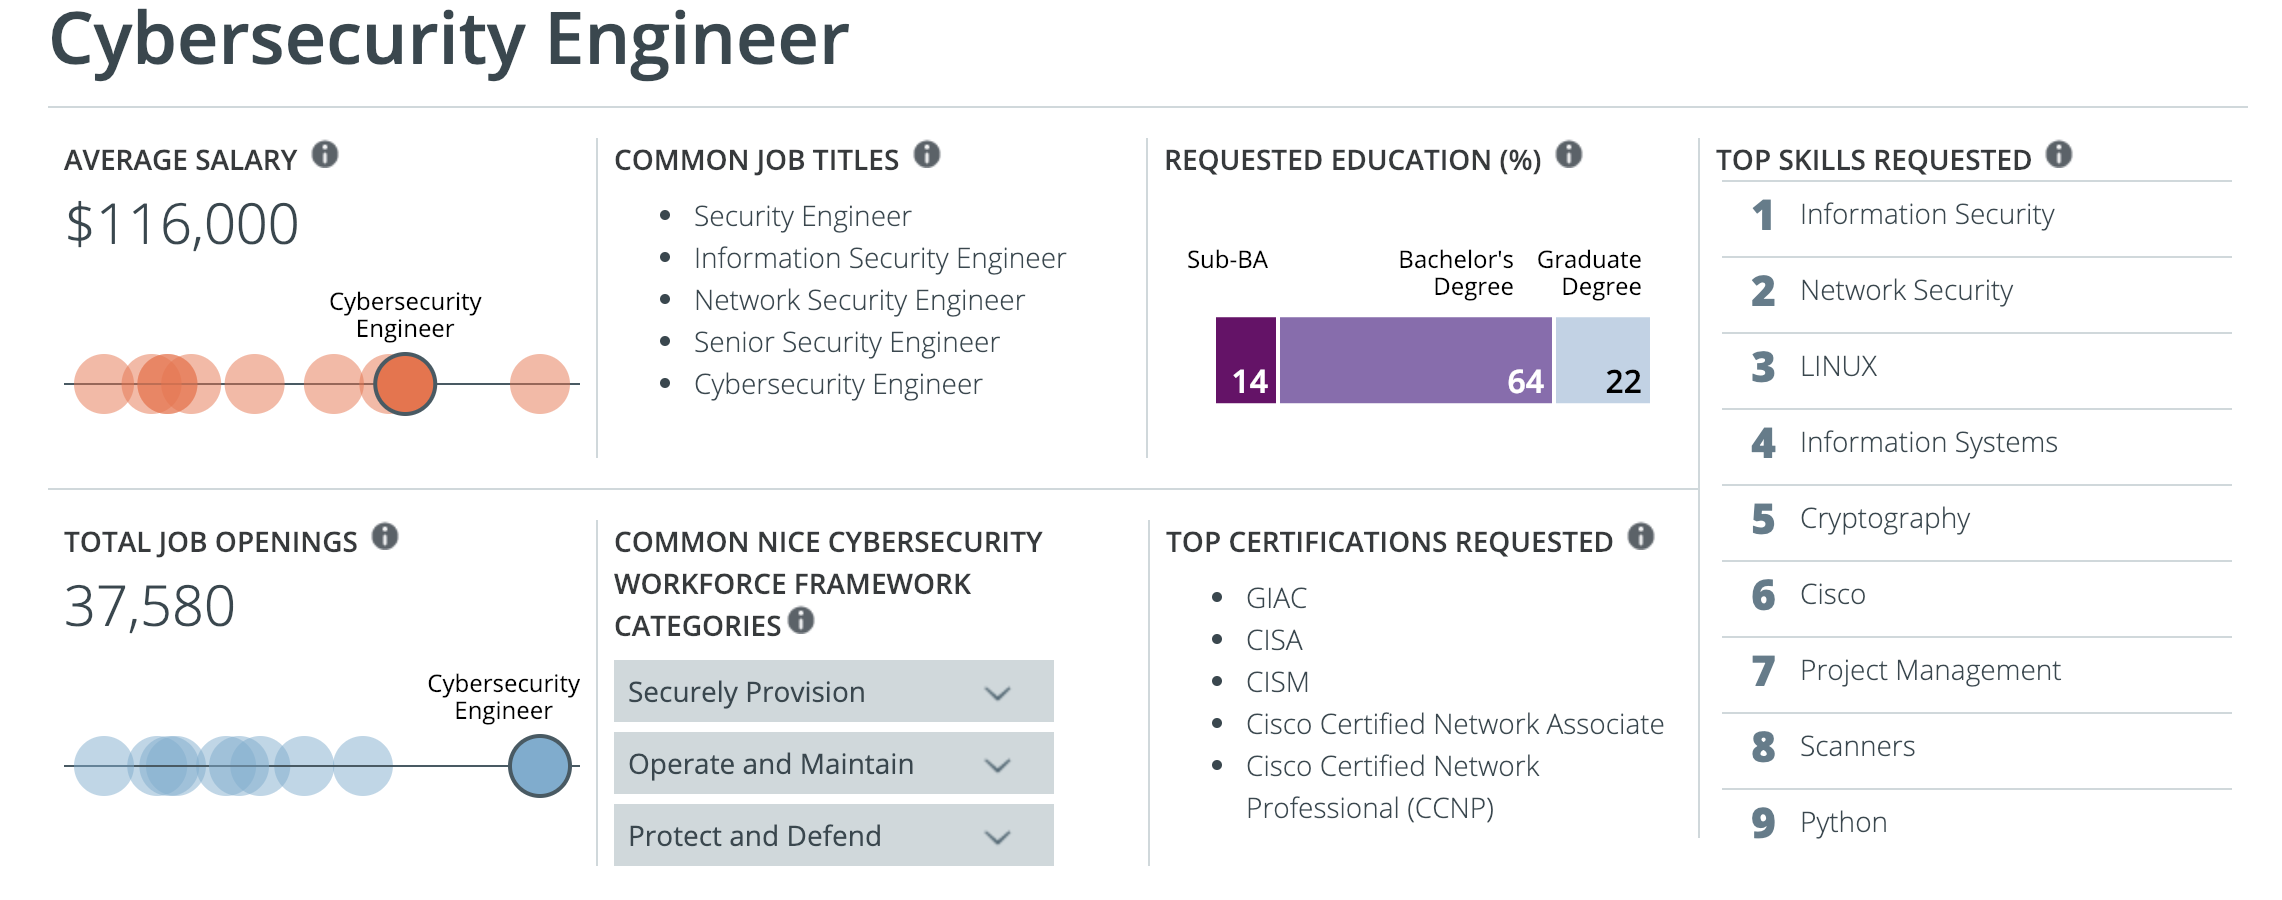 Cybersecurity Engineer information